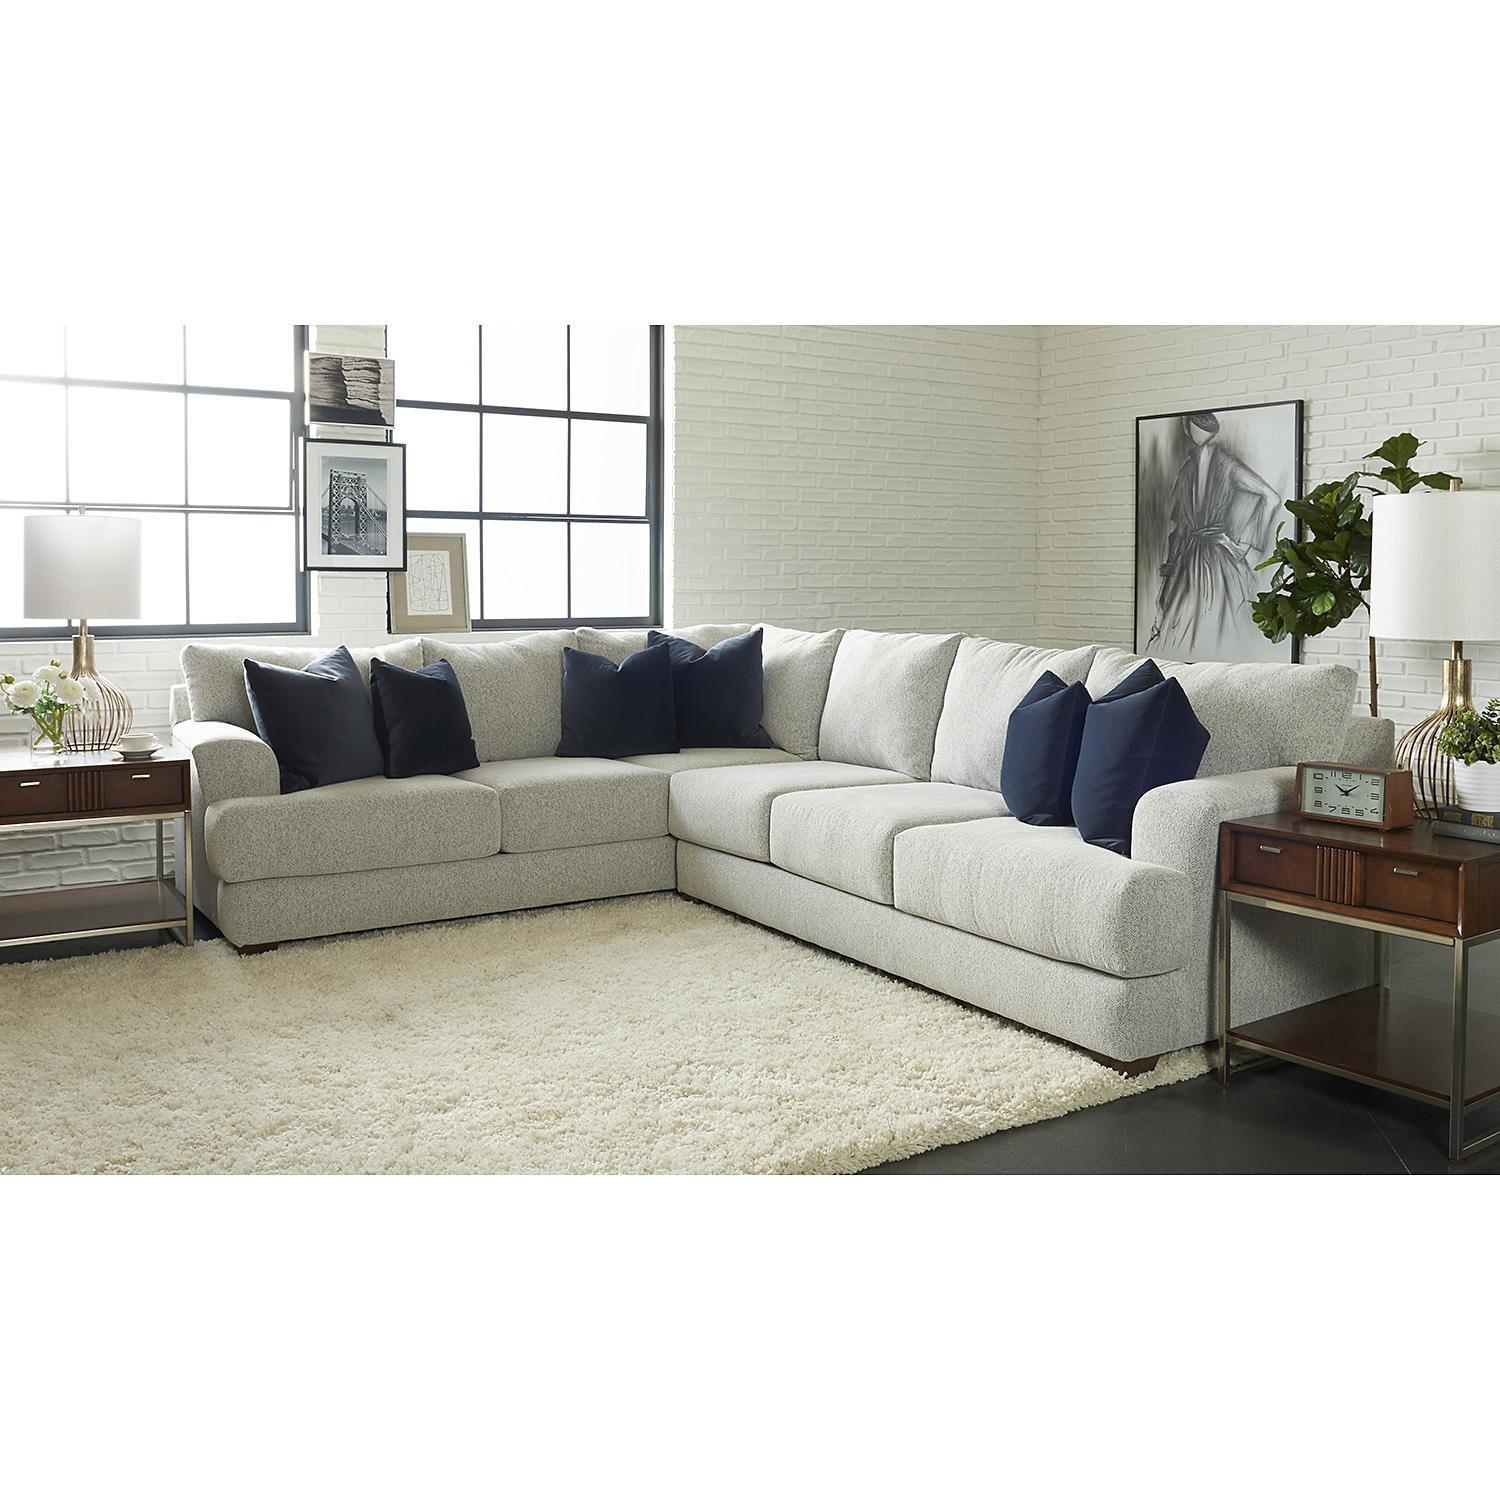 6) Sectional choice 3